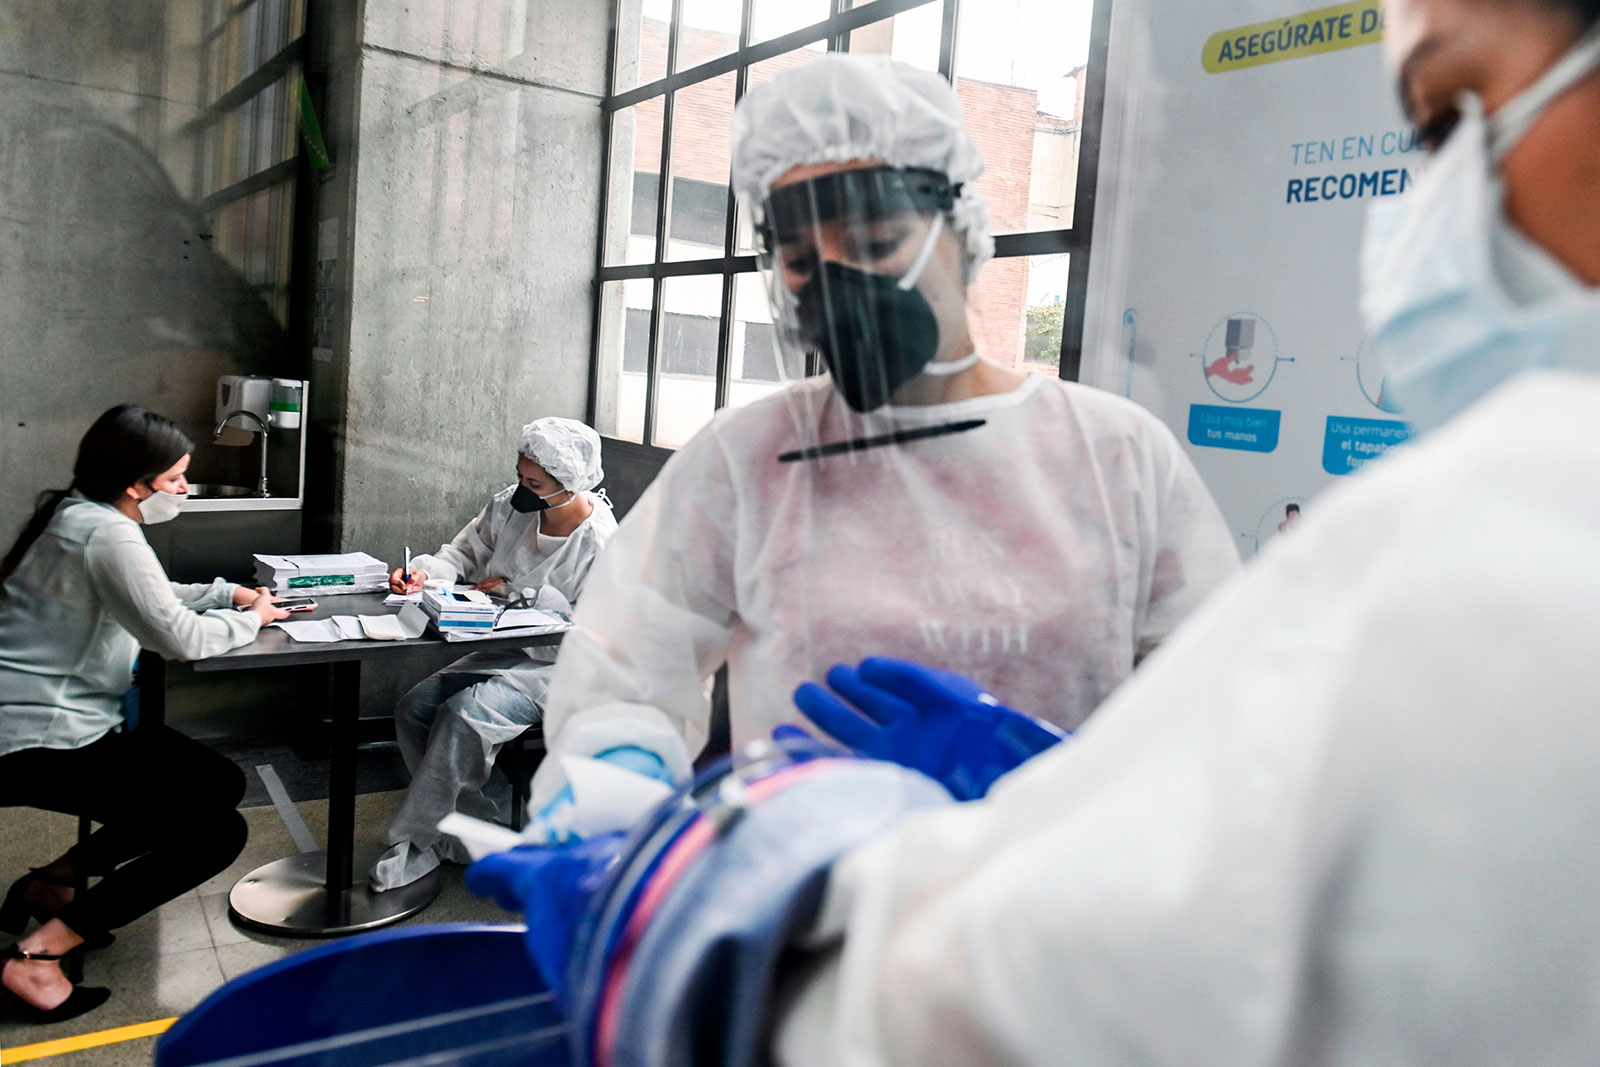 Health workers prepare to test people for coronavirus at a metro station in Medellin, Colombia, on July 6.